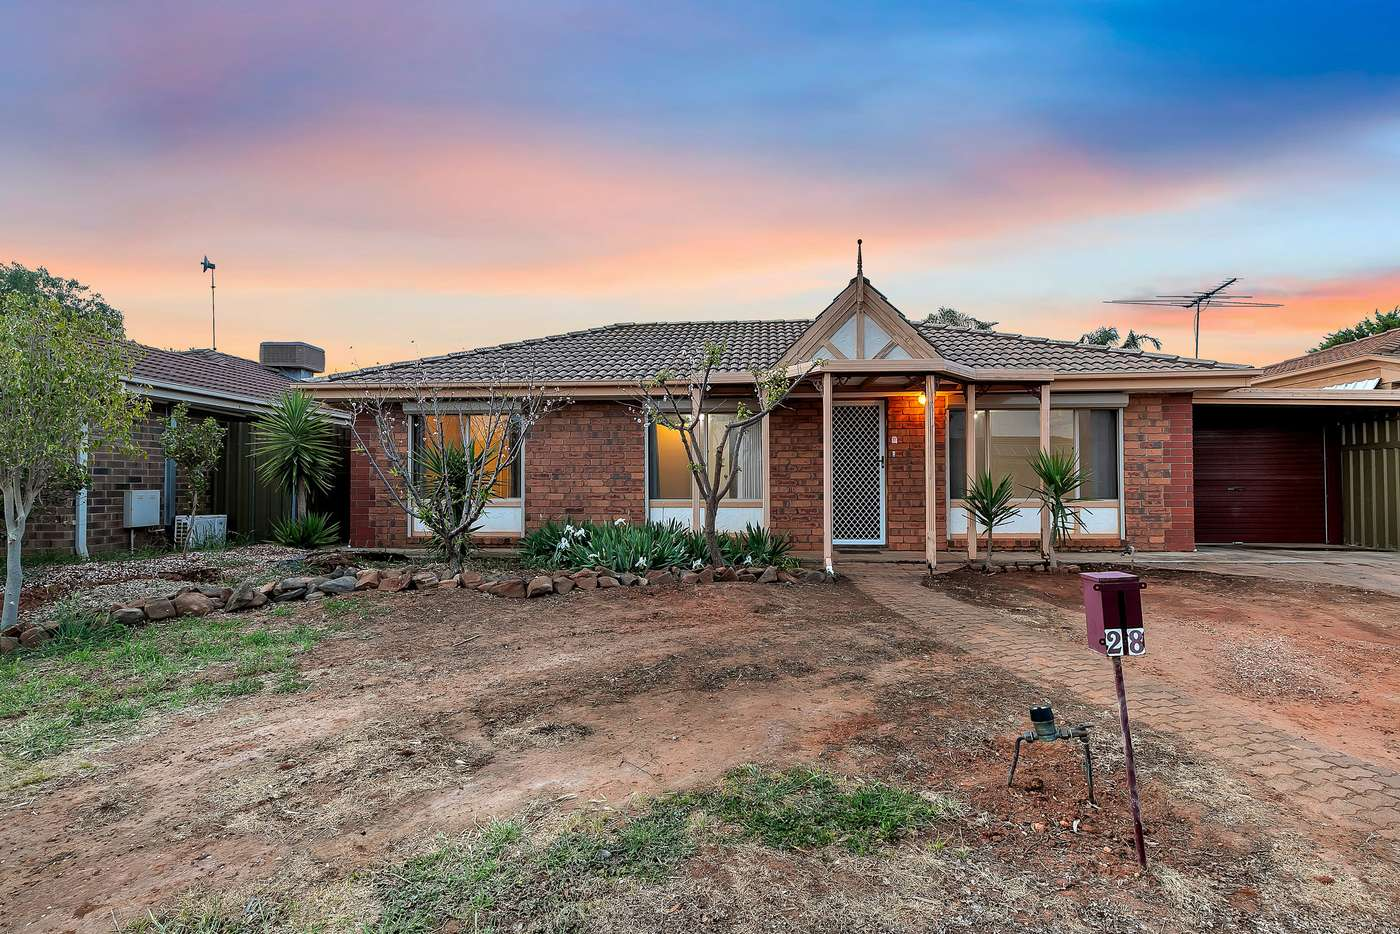 Main view of Homely house listing, 28 McInerney Court, Andrews Farm SA 5114